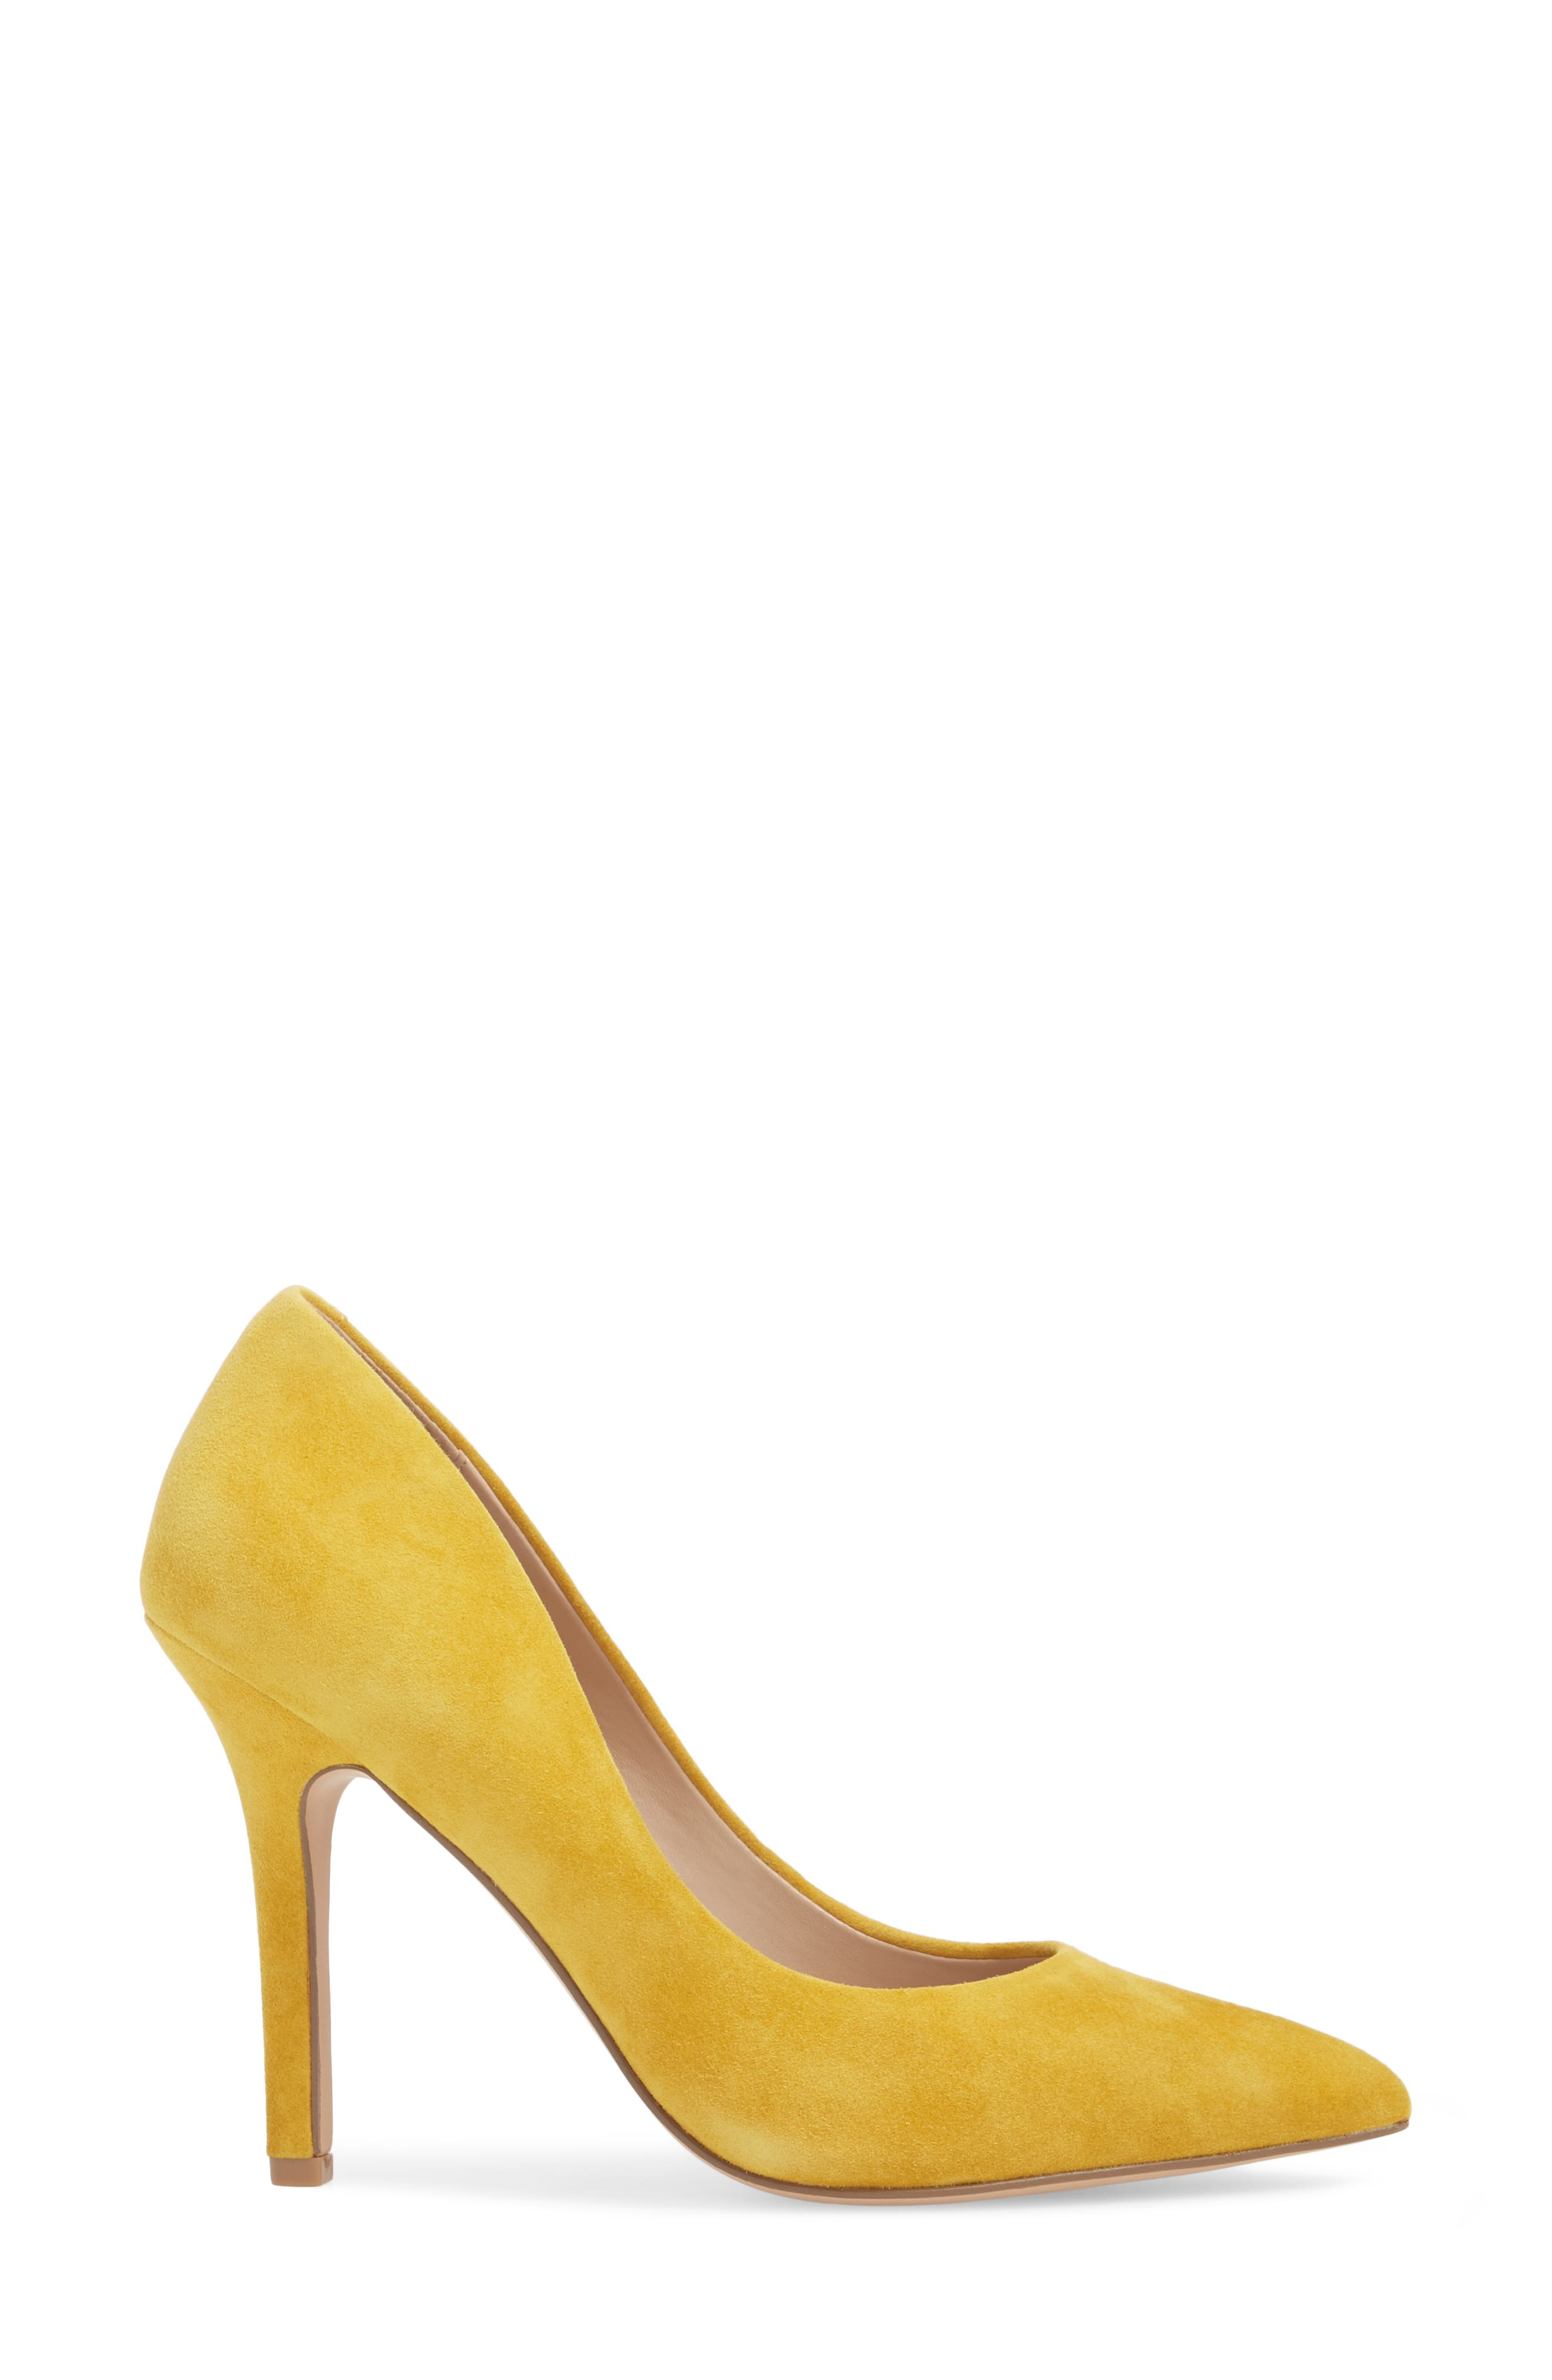 Maxx Pointy Toe Pump,                             Alternate thumbnail 3, color,                             Canary Suede